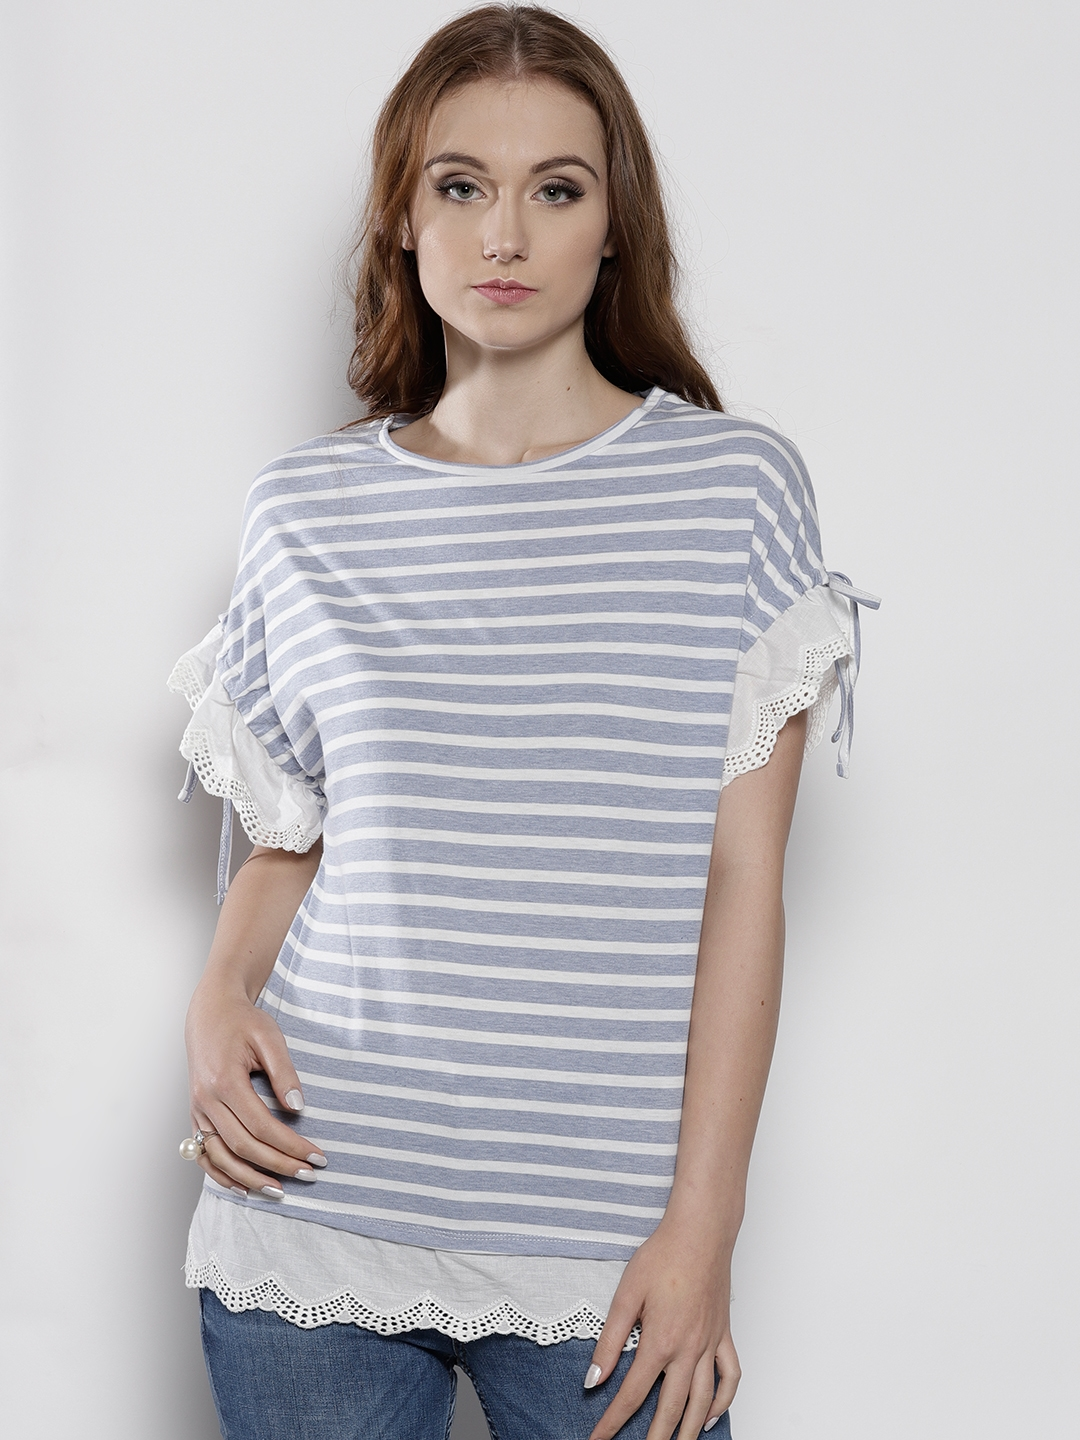 8635d63863c3a3 Buy DOROTHY PERKINS Women Blue & White Striped Top - Tops for Women ...